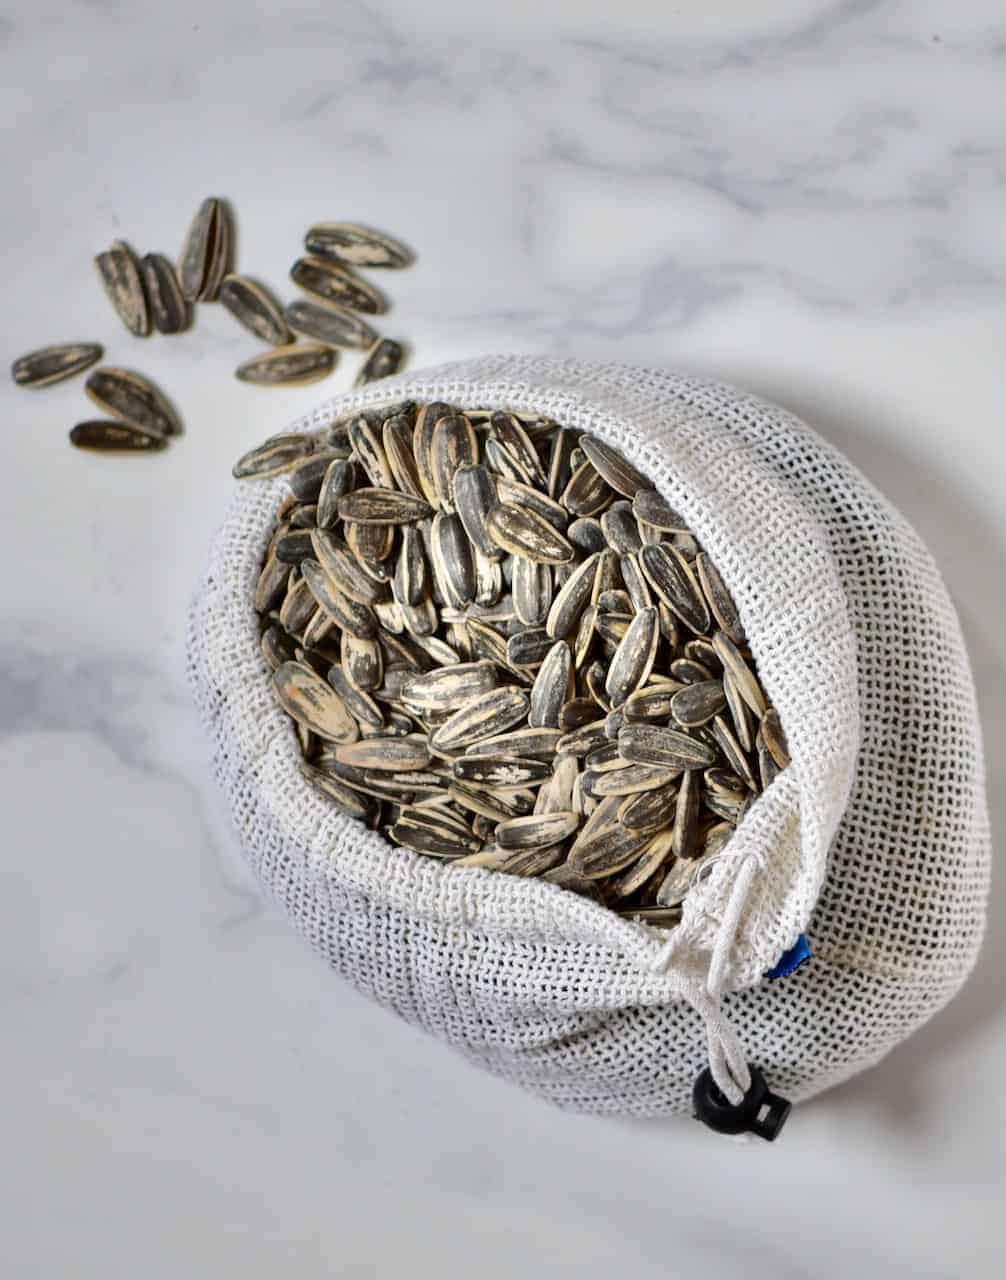 sunflower seeds in a sack